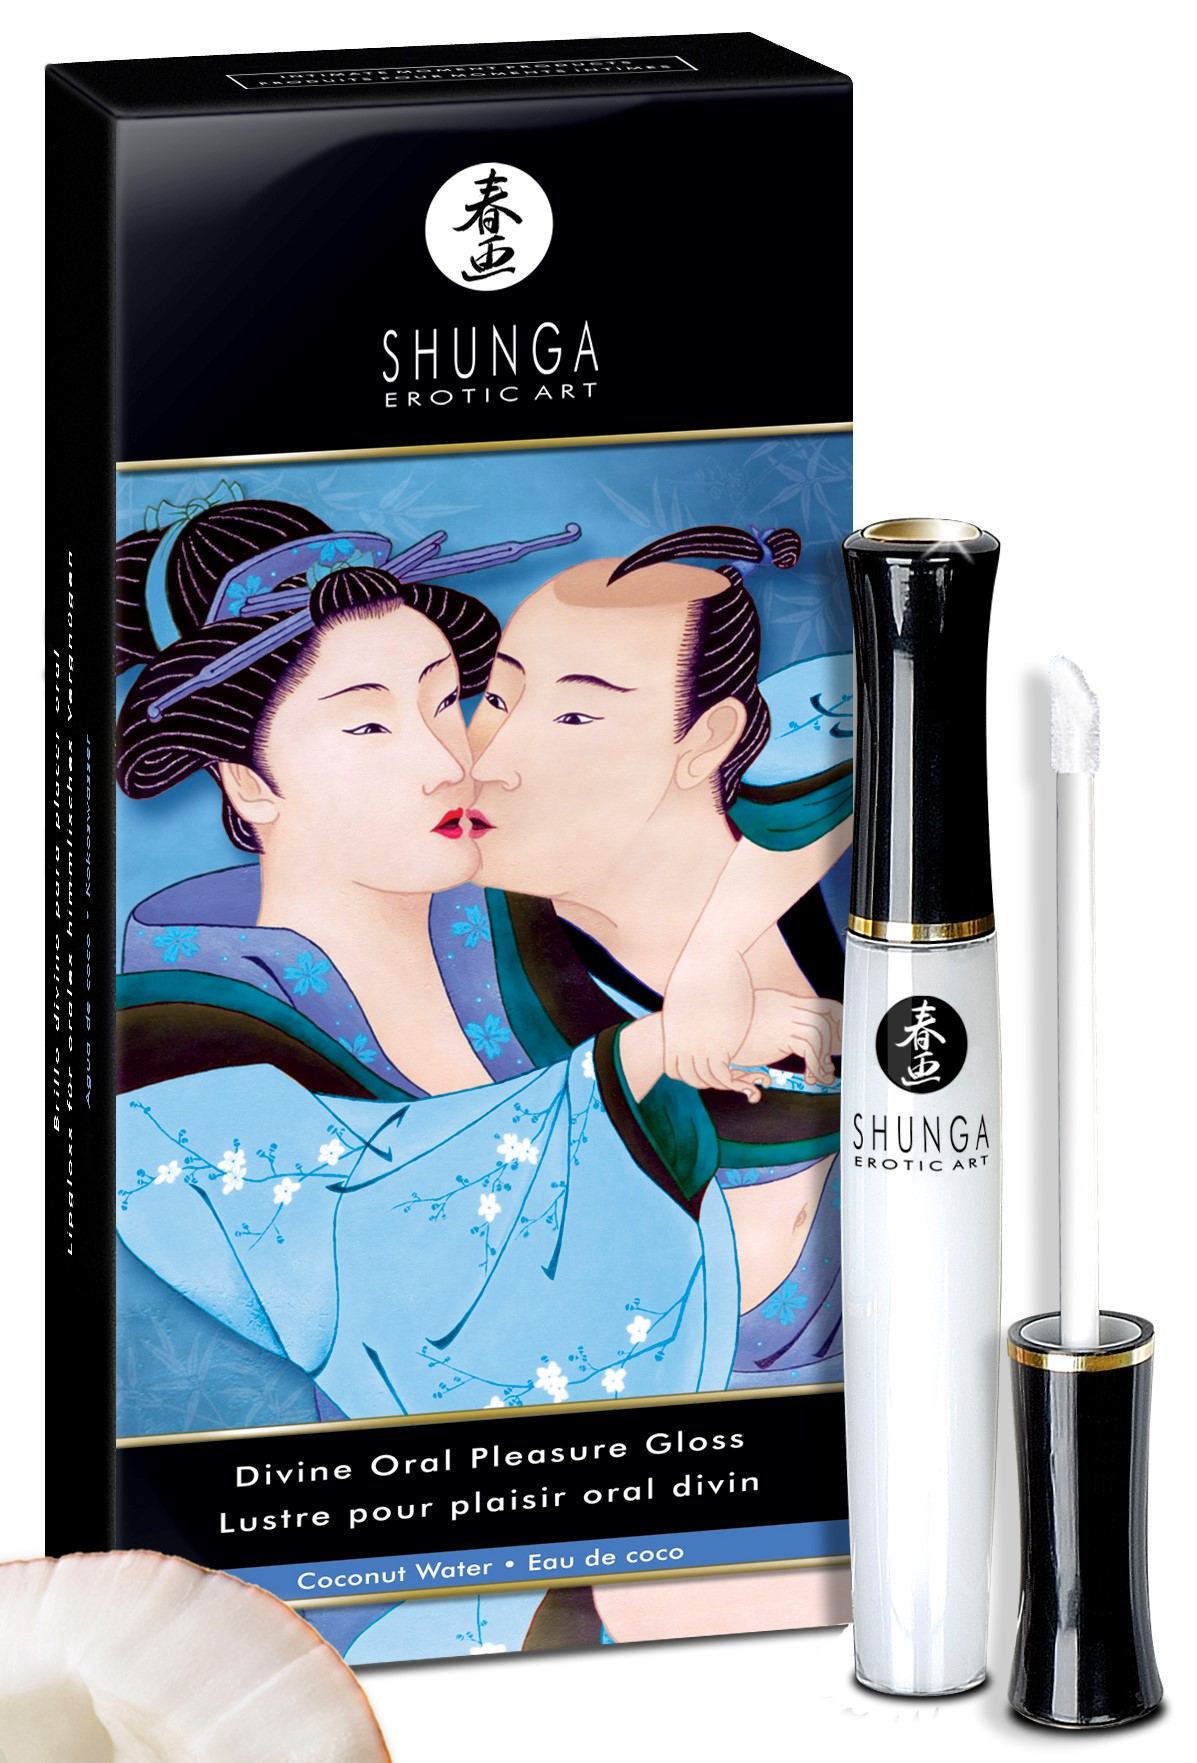 Shunga DIVINE ORAL PLEASURE GLOSS COCONUT WATER 10 ml